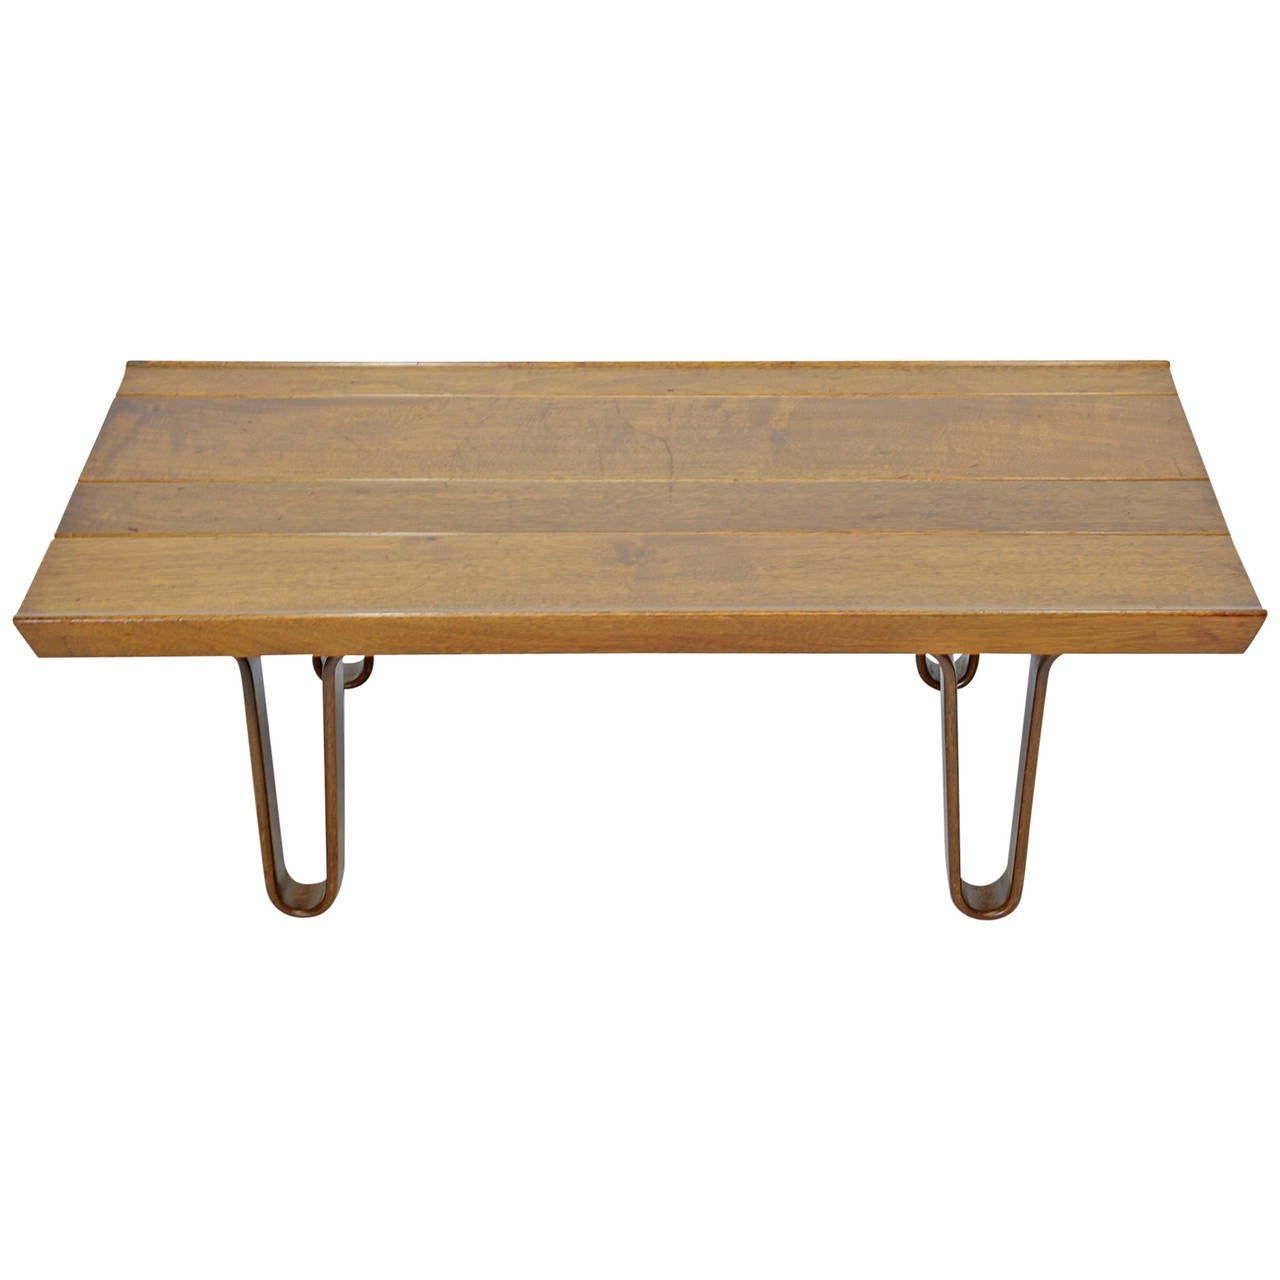 Edward Wormley For Dunbar Long John Bench Or Coffee Table At 1stdibs